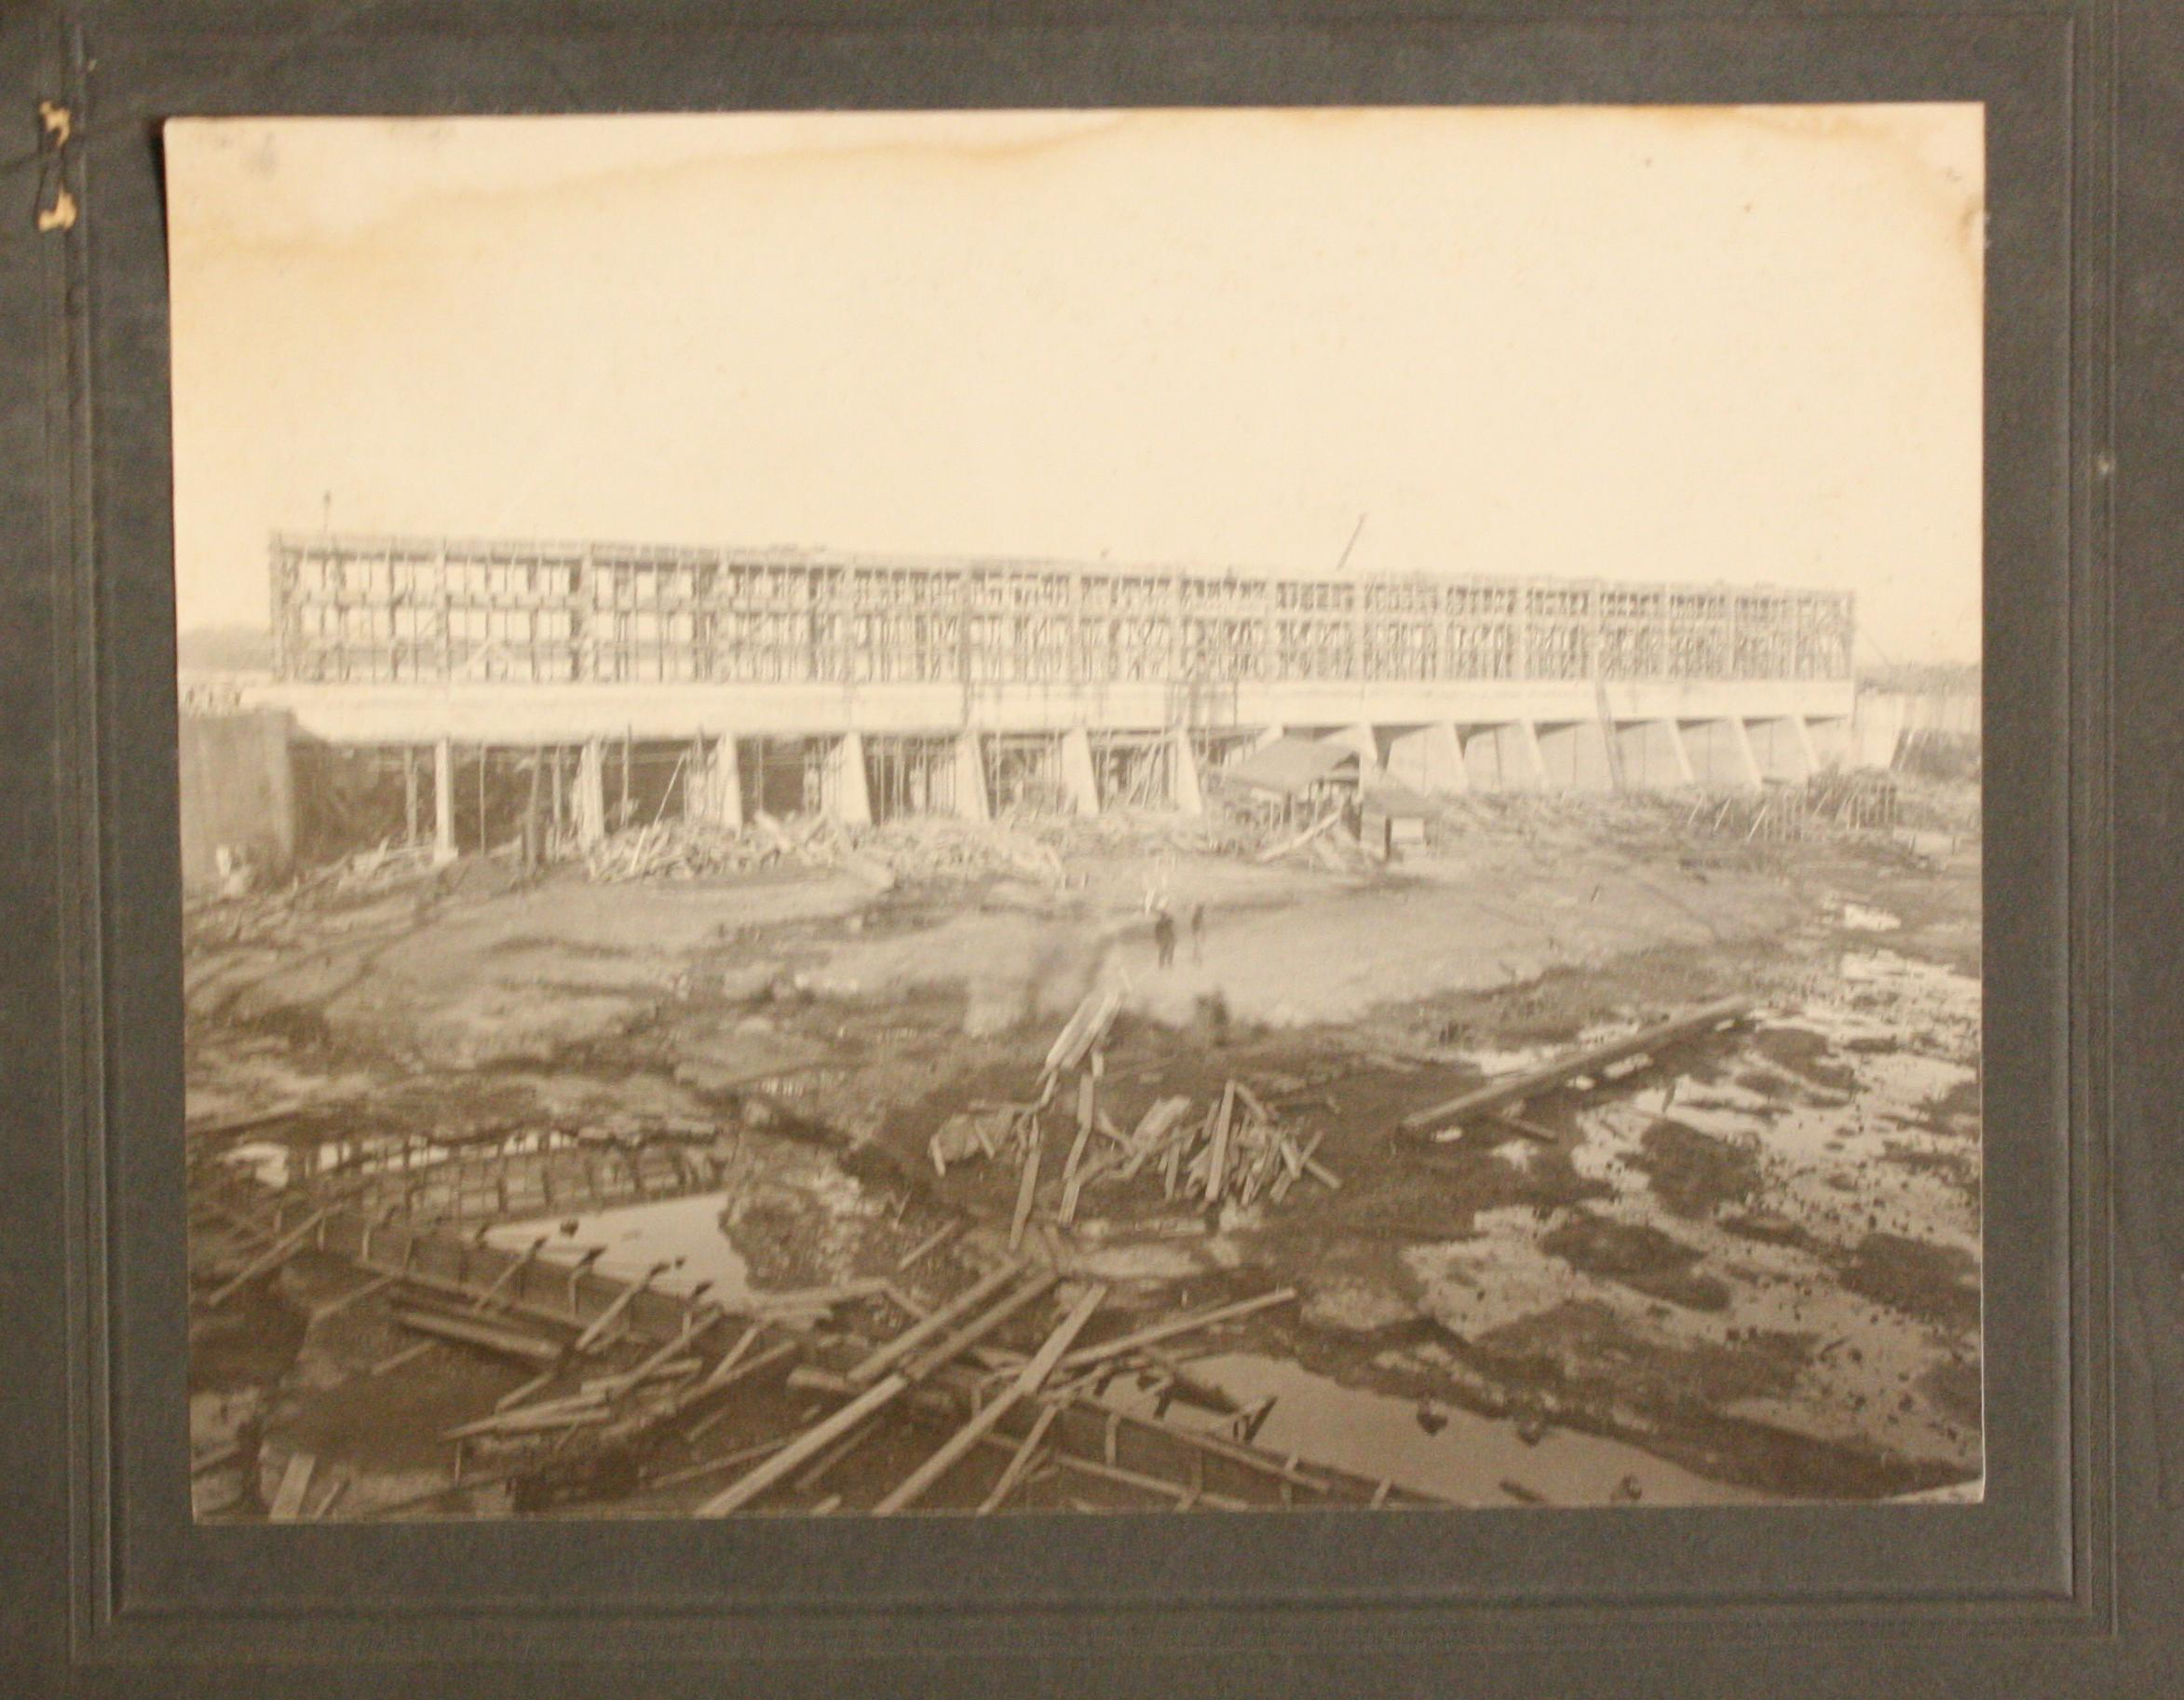 Black and white image from 1904 of the construction of the forebays of the Ontario Power Company. Large construction site, 16 rectangular intakes span the length of the forebay, scaffolding above these intakes. Two people are in the centre of the image; they are blurry due to the exposure time of the camera. The intakes are each about 20 foot by 20 foot.